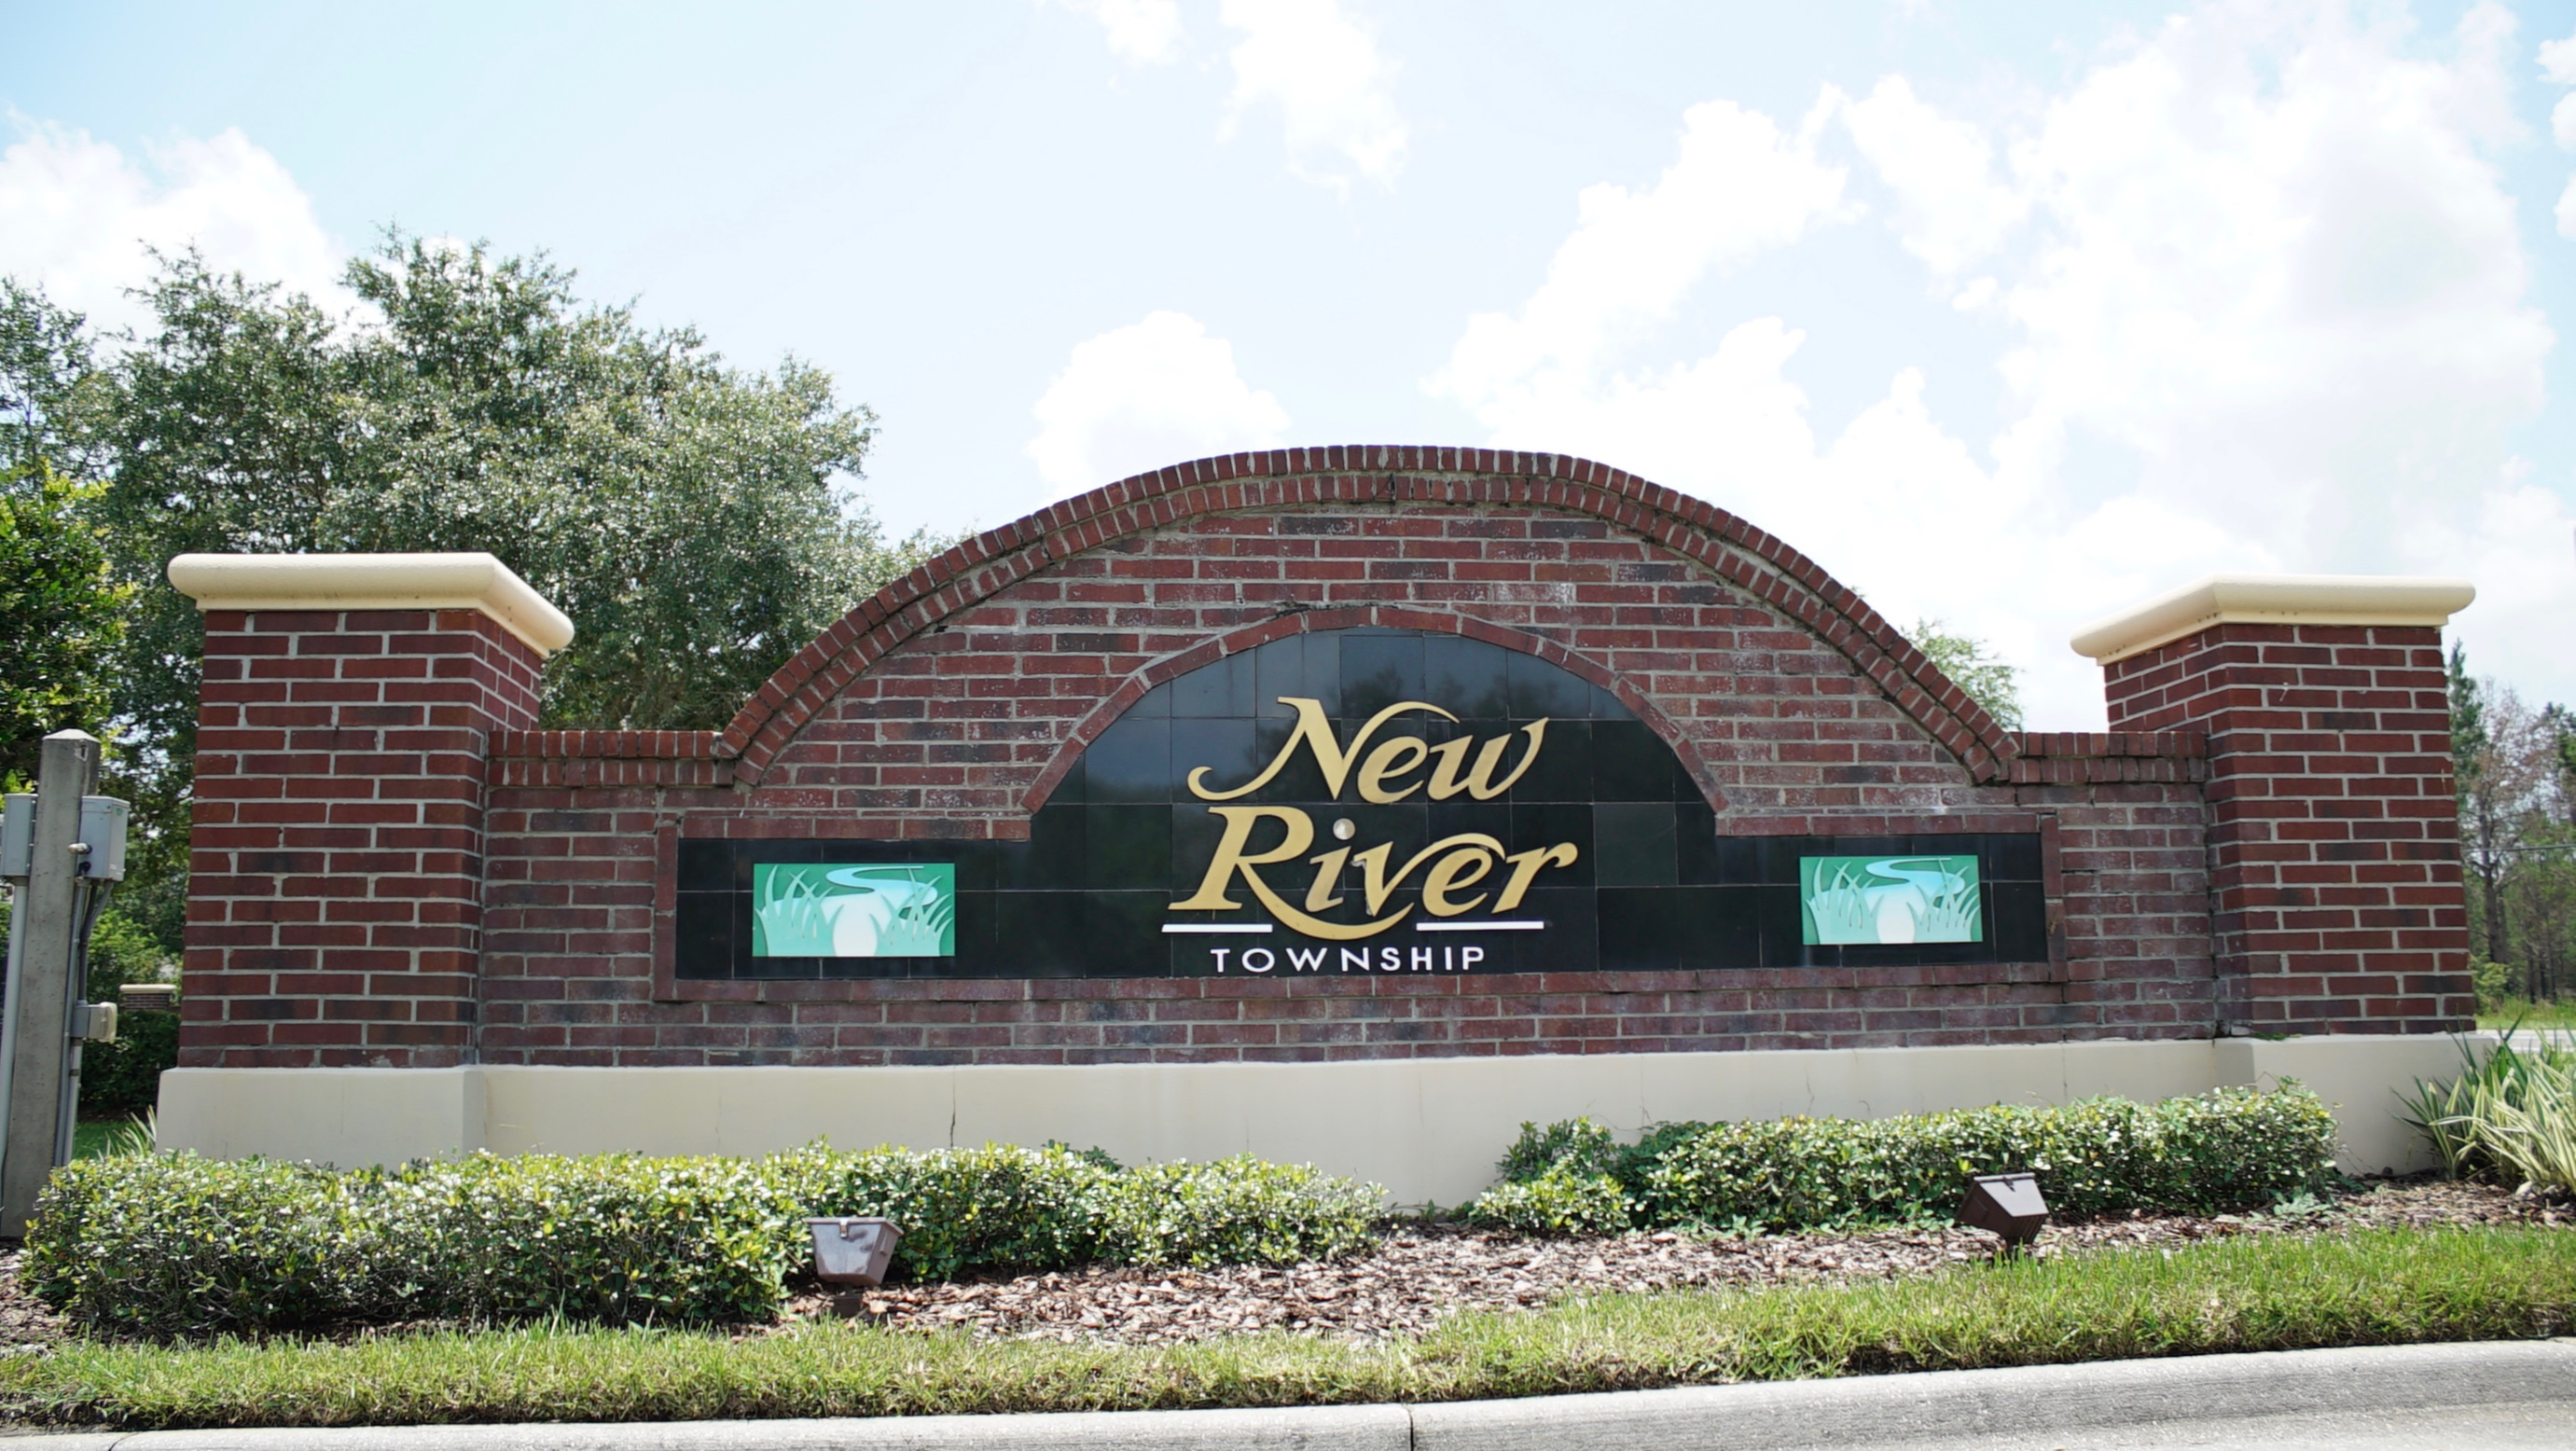 New River Township